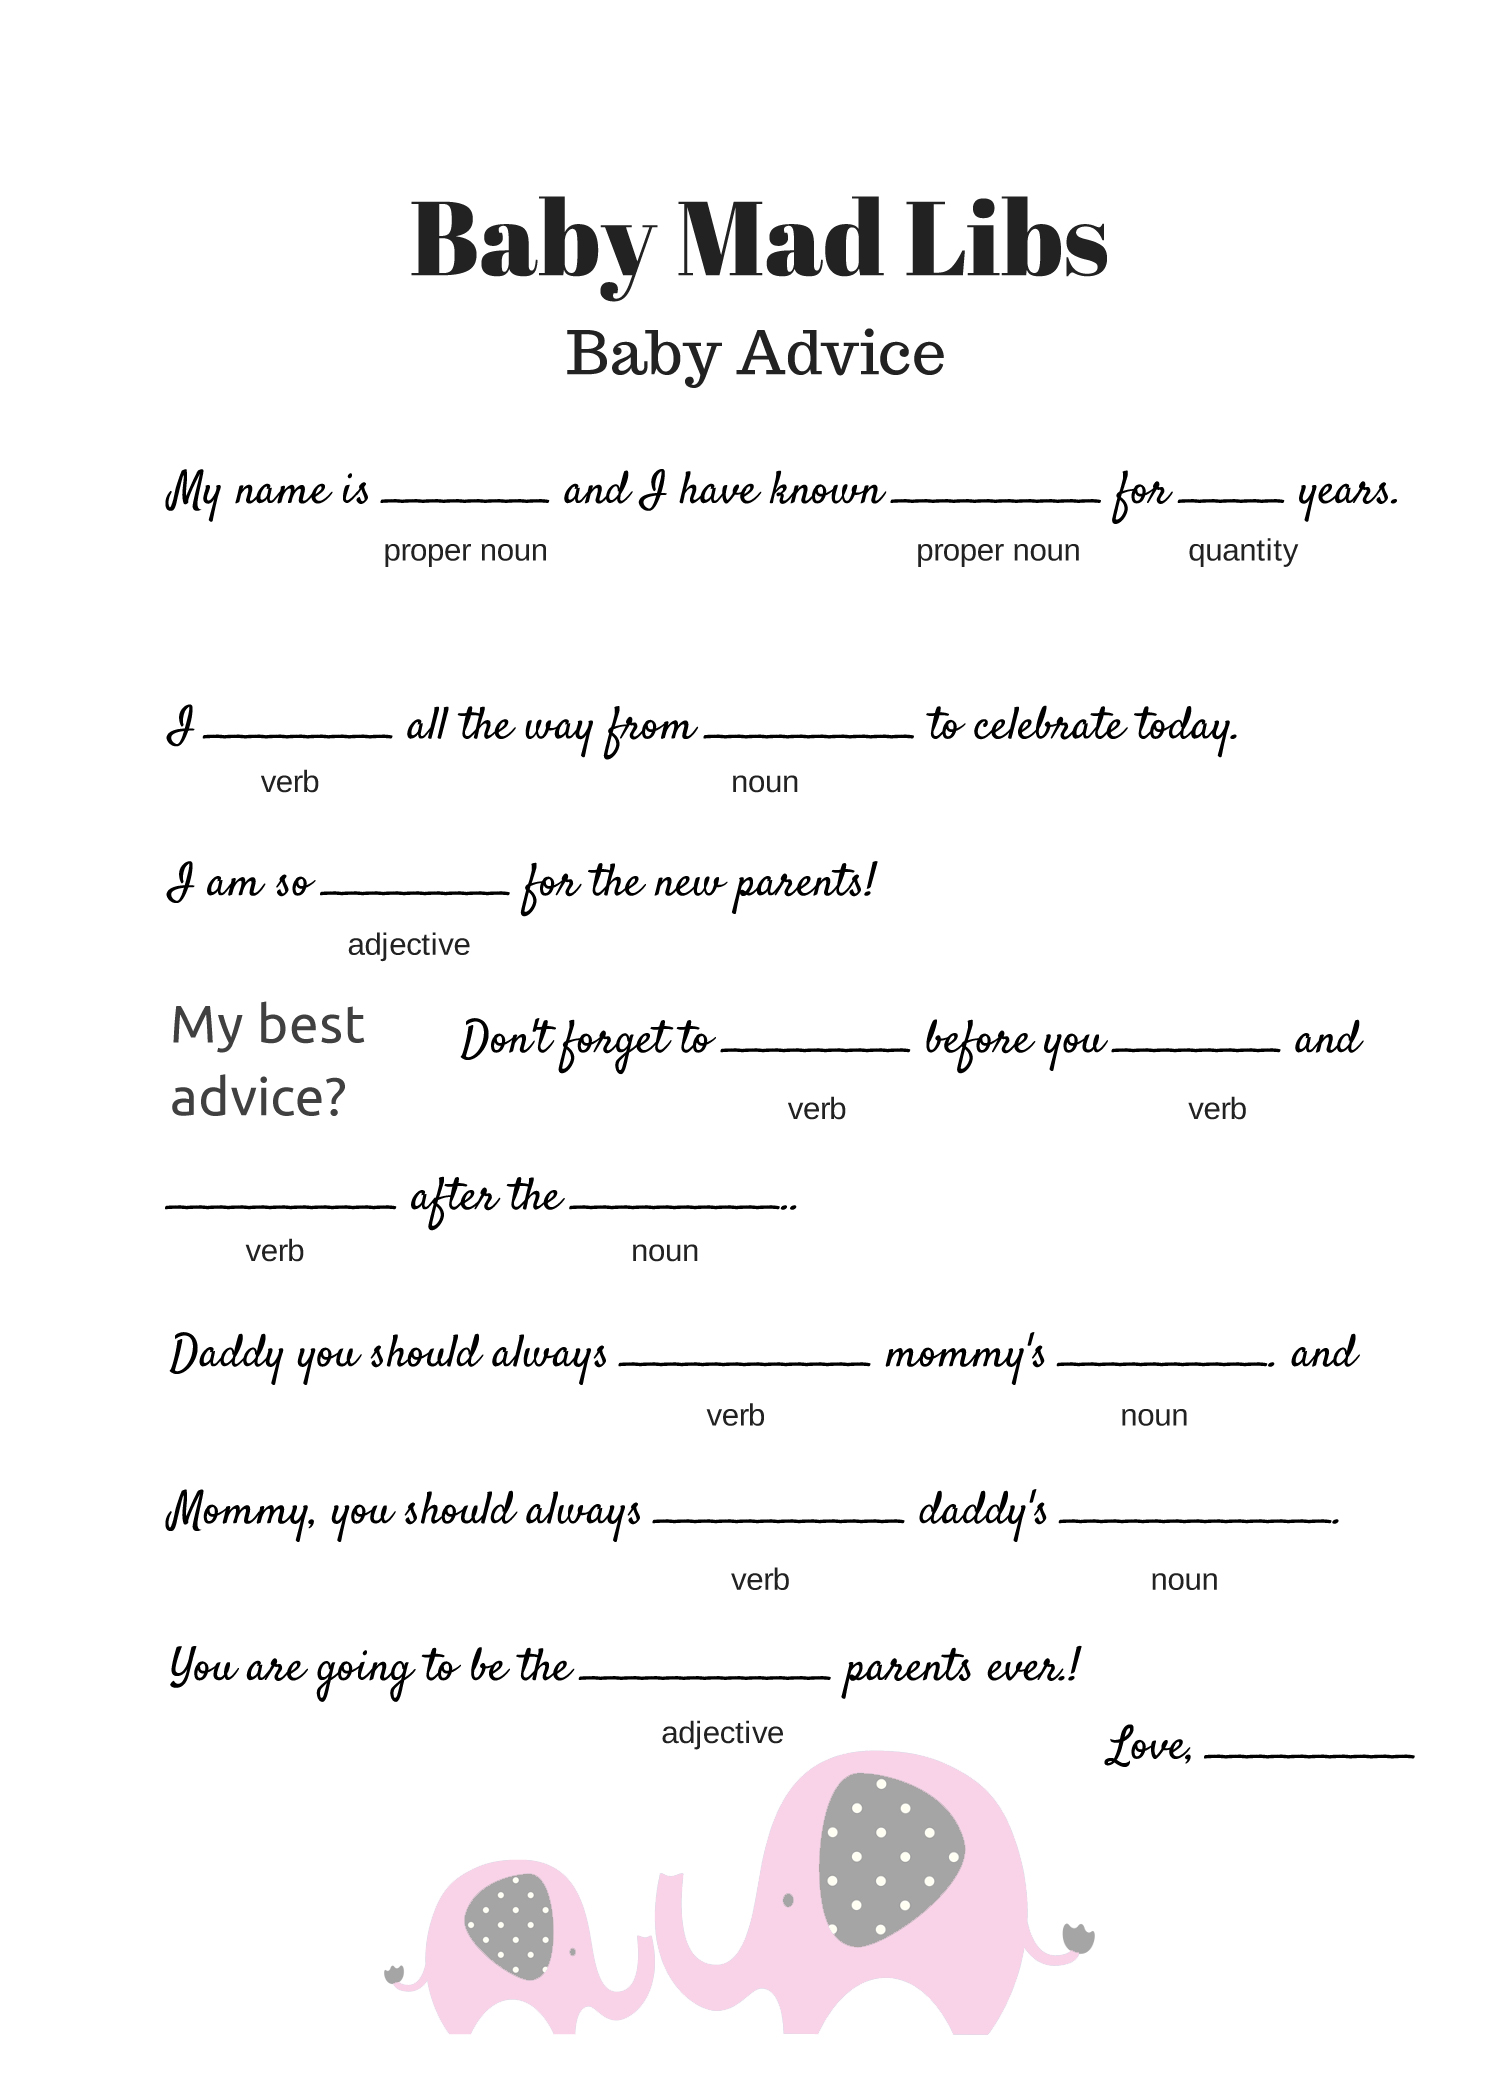 Pink Elephant Free Baby Shower Mad Libs Game Baby Advice Game